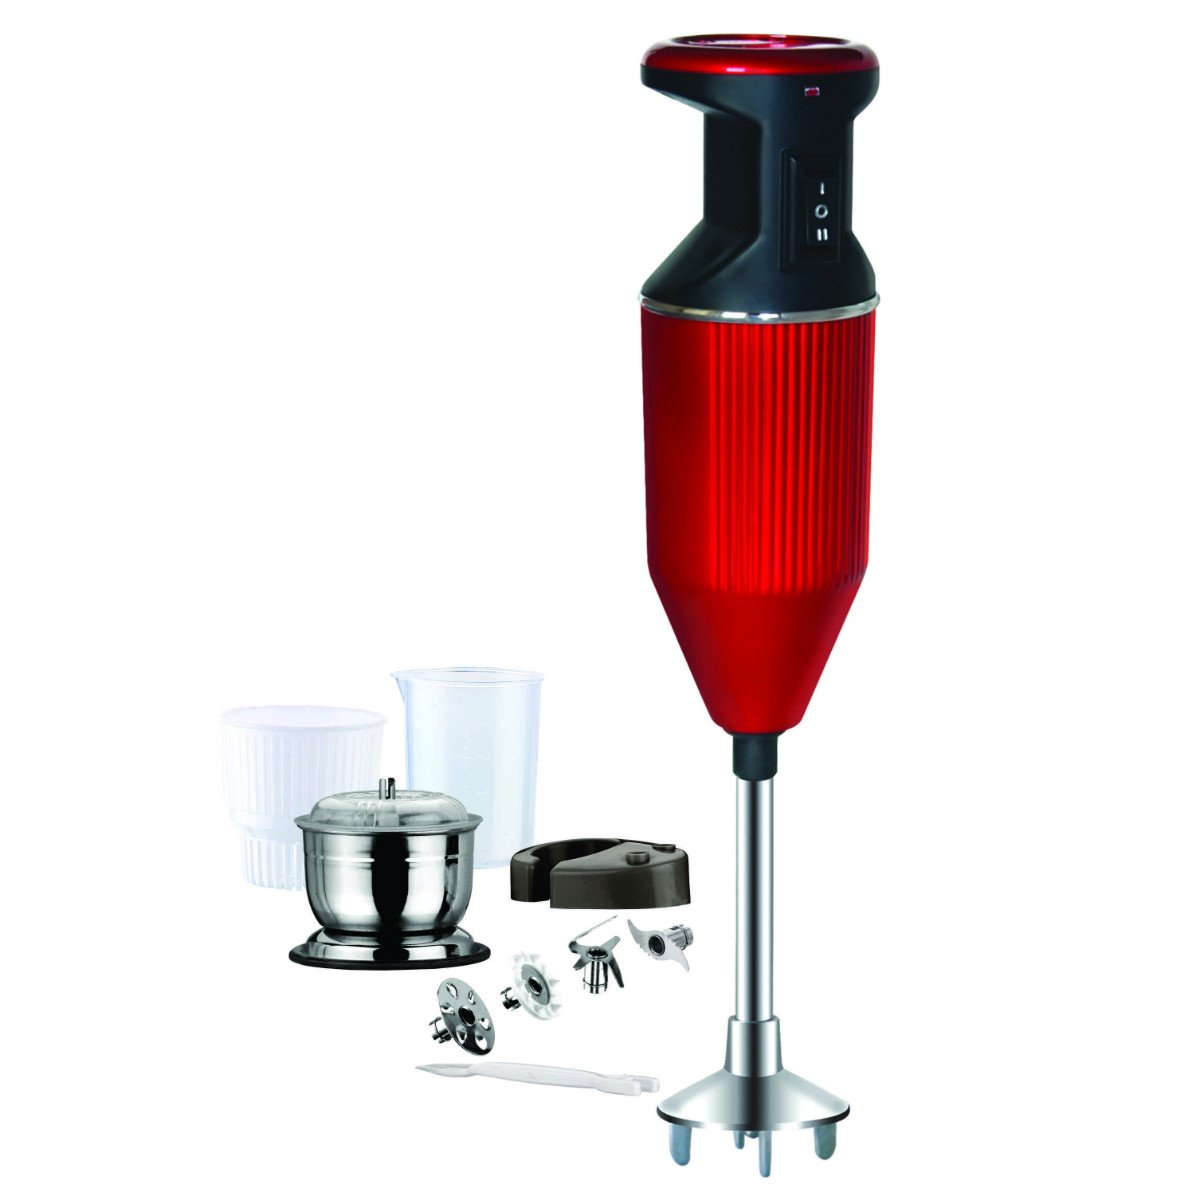 Viaan Classic 175W/200W Hand Blender (with..